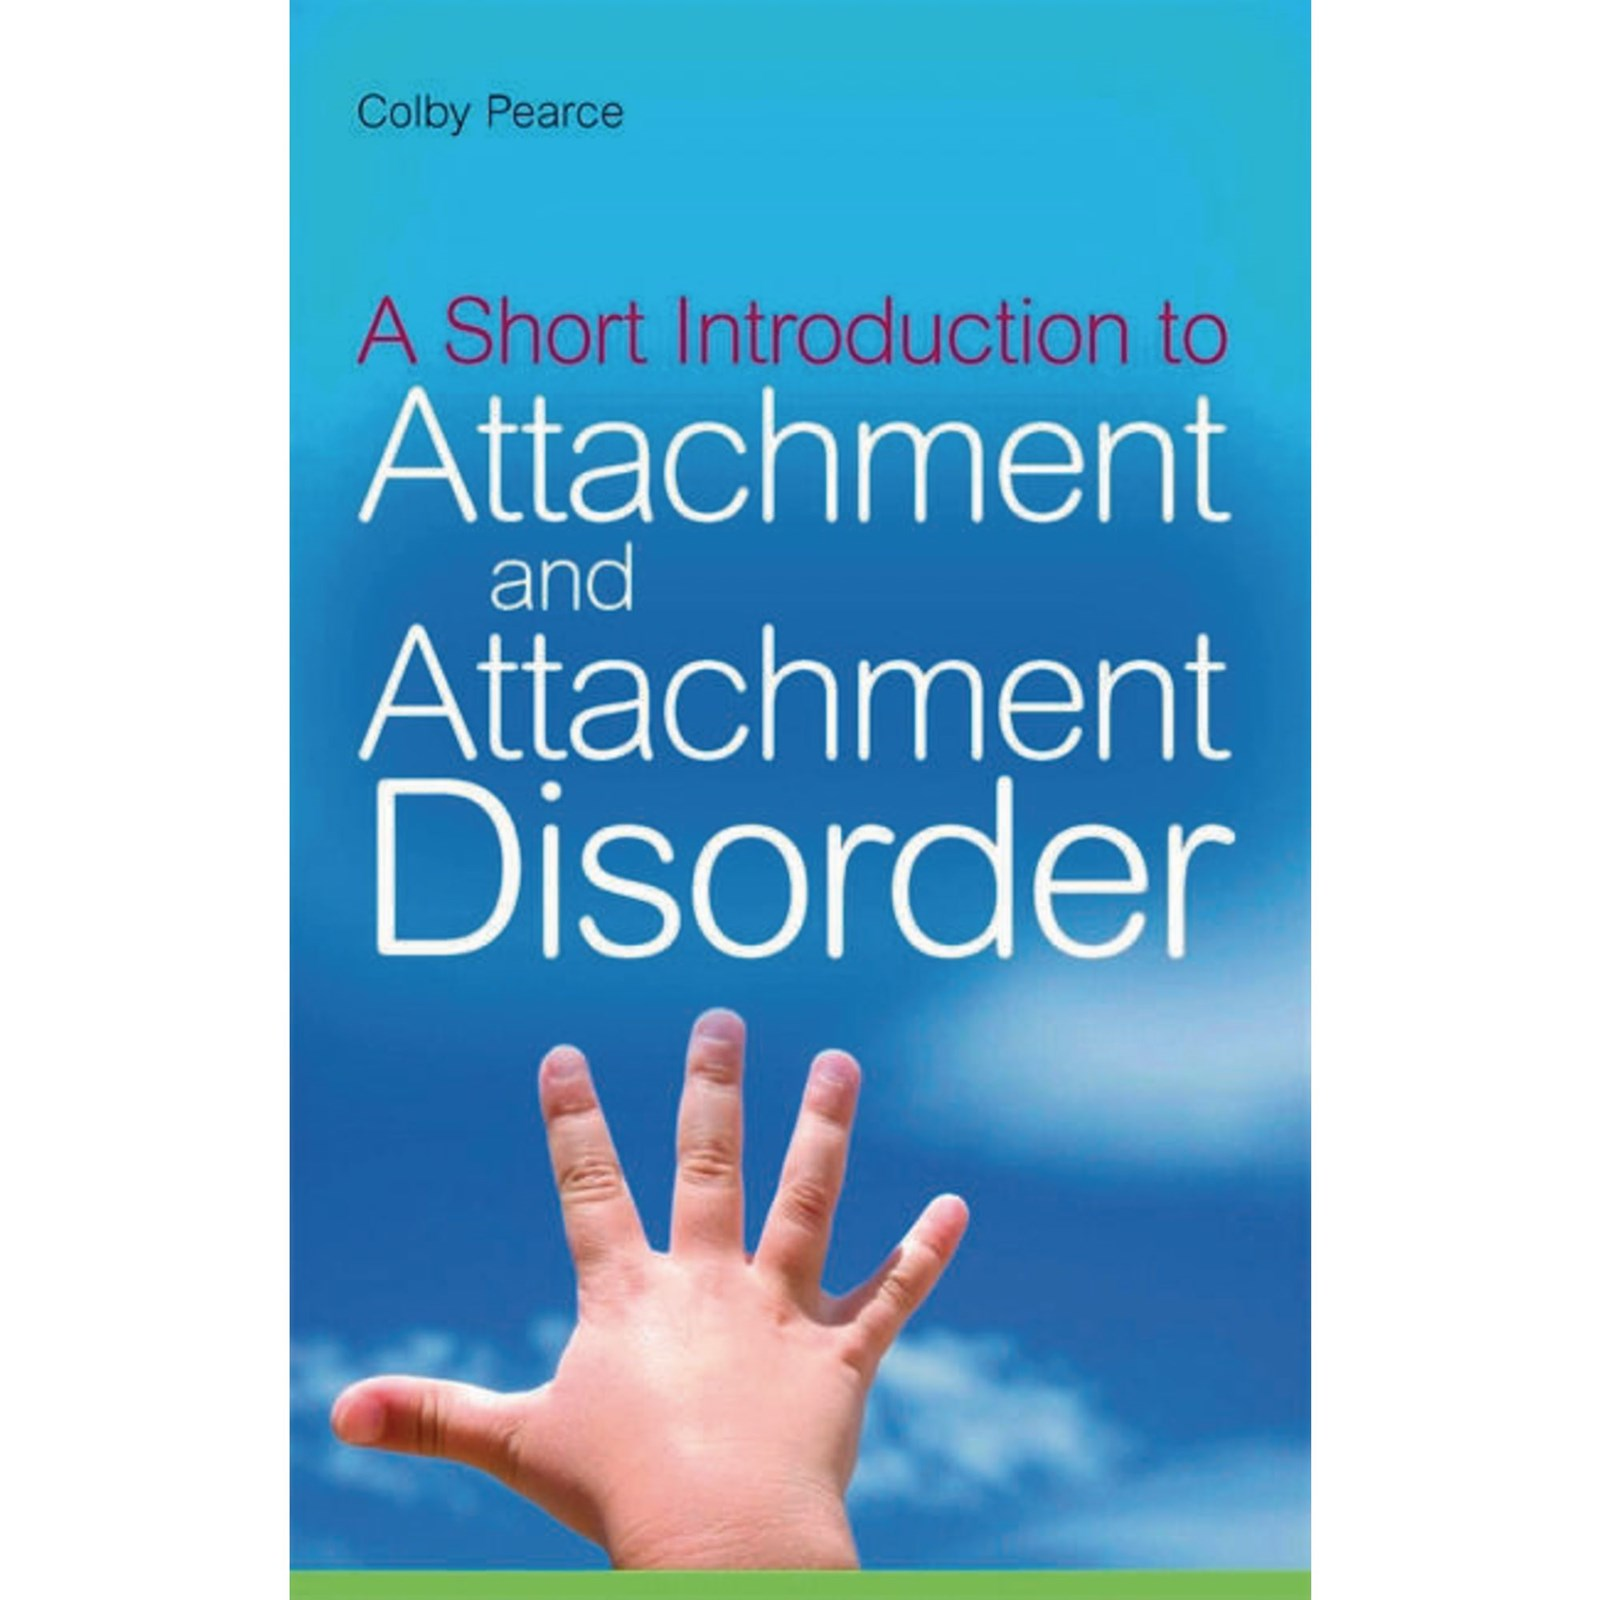 relation infant mother attachment and eating disorders Parent-child attachment relationships and the effects of attachment disruption victoria fitton, phd, lmsw, acsw  of the mother - infant/child attachment relationship attachment, first and foremost, exists in the  disorder attachment relationships form in the first 3 years of life - and are strongly impacted from the.